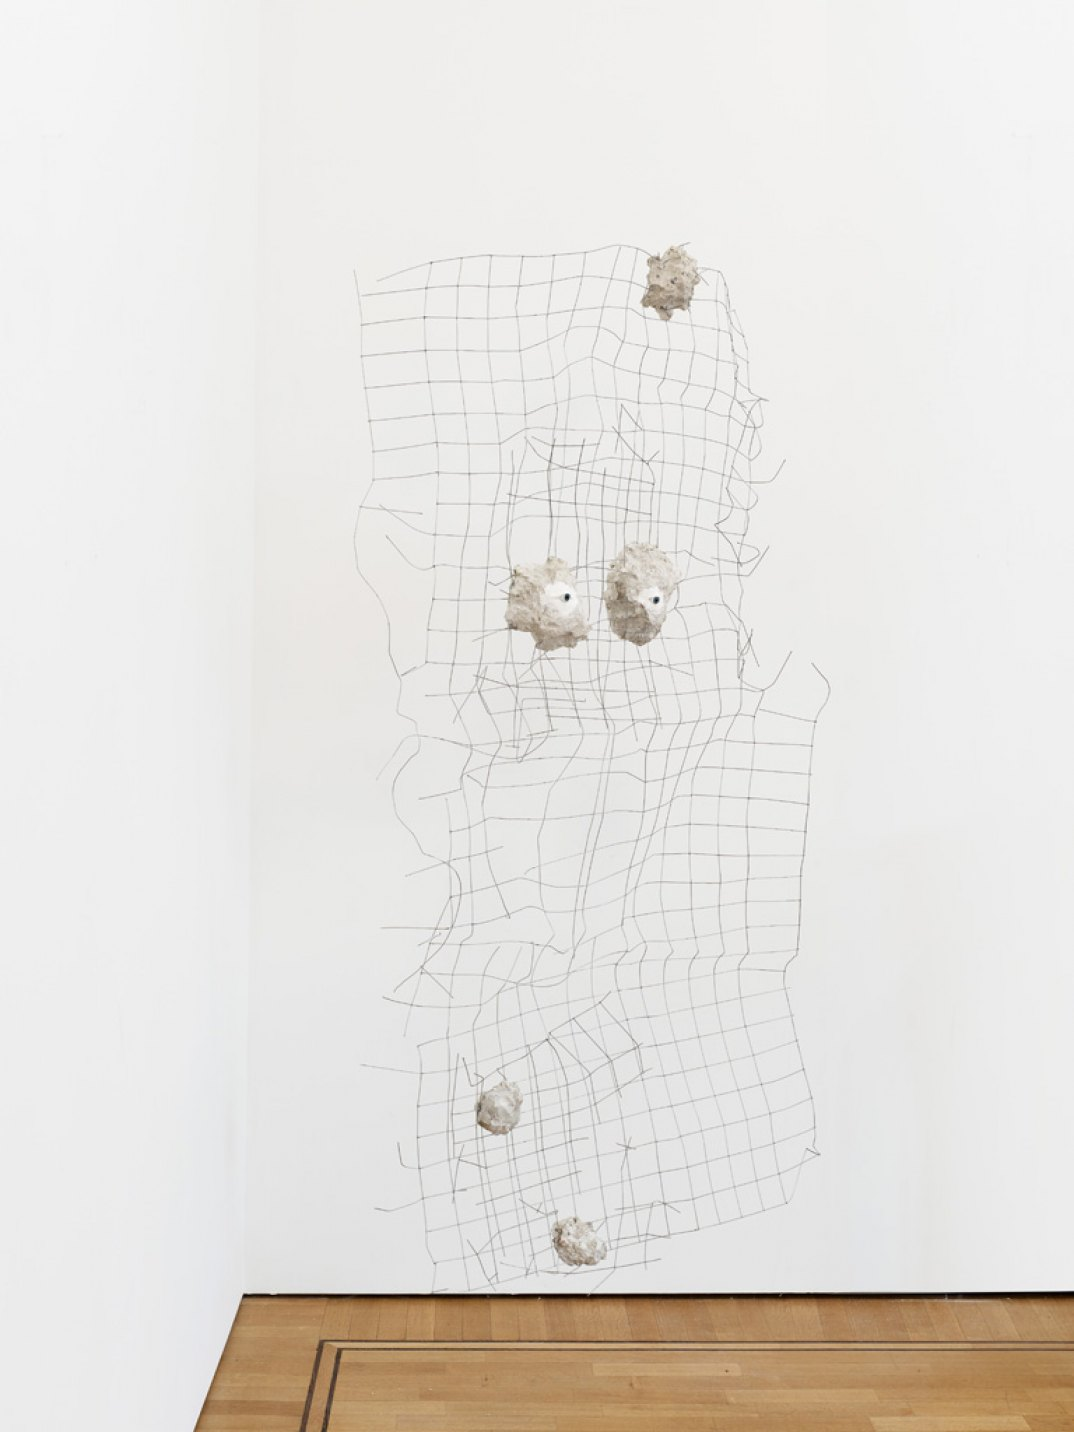 Giulio Delvè, <em>Not our ideology, not ourbelief, not our objectives; Whatremains, therefore, keep an eyeon you</em>, 2017, wire mesh, glass eyes, plaster, mortar, concrete, 185 × 100 × 10 cm - Mendes Wood DM